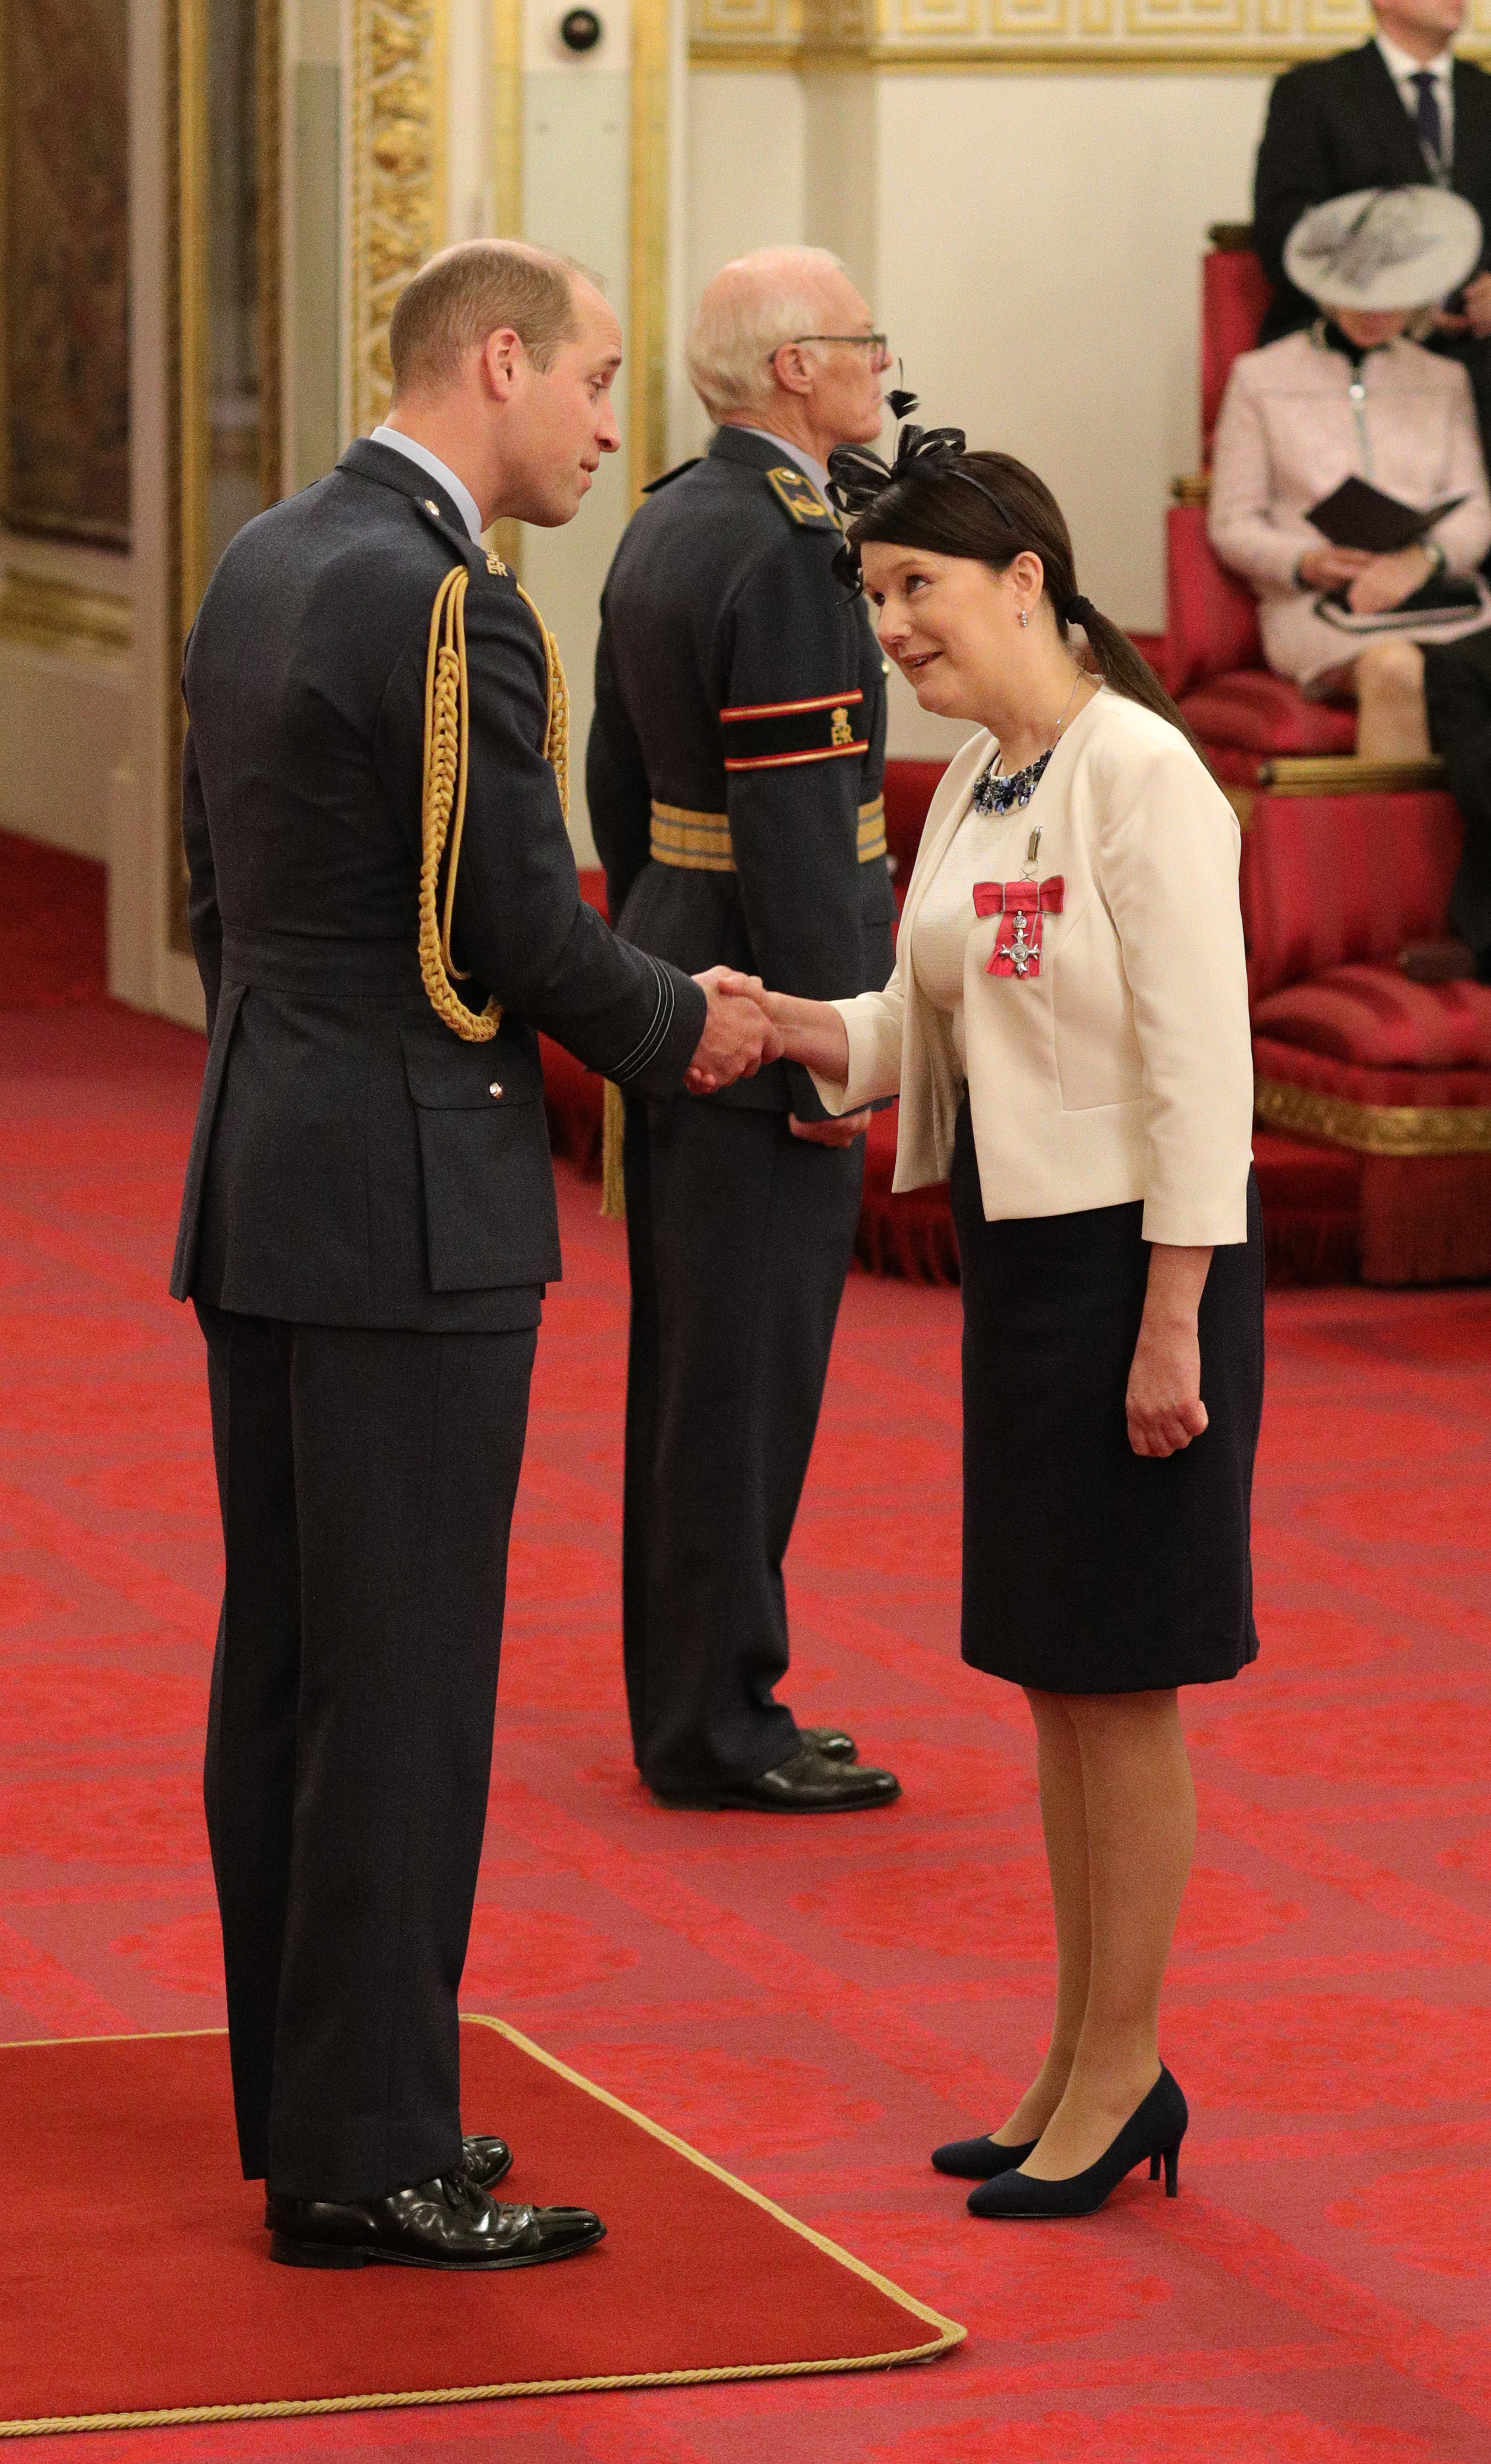 Brighton & Hove Buses' Accessibility and Community Manager Victoria Garcia received her MBE from the Prince William, the Duke of Cambridge